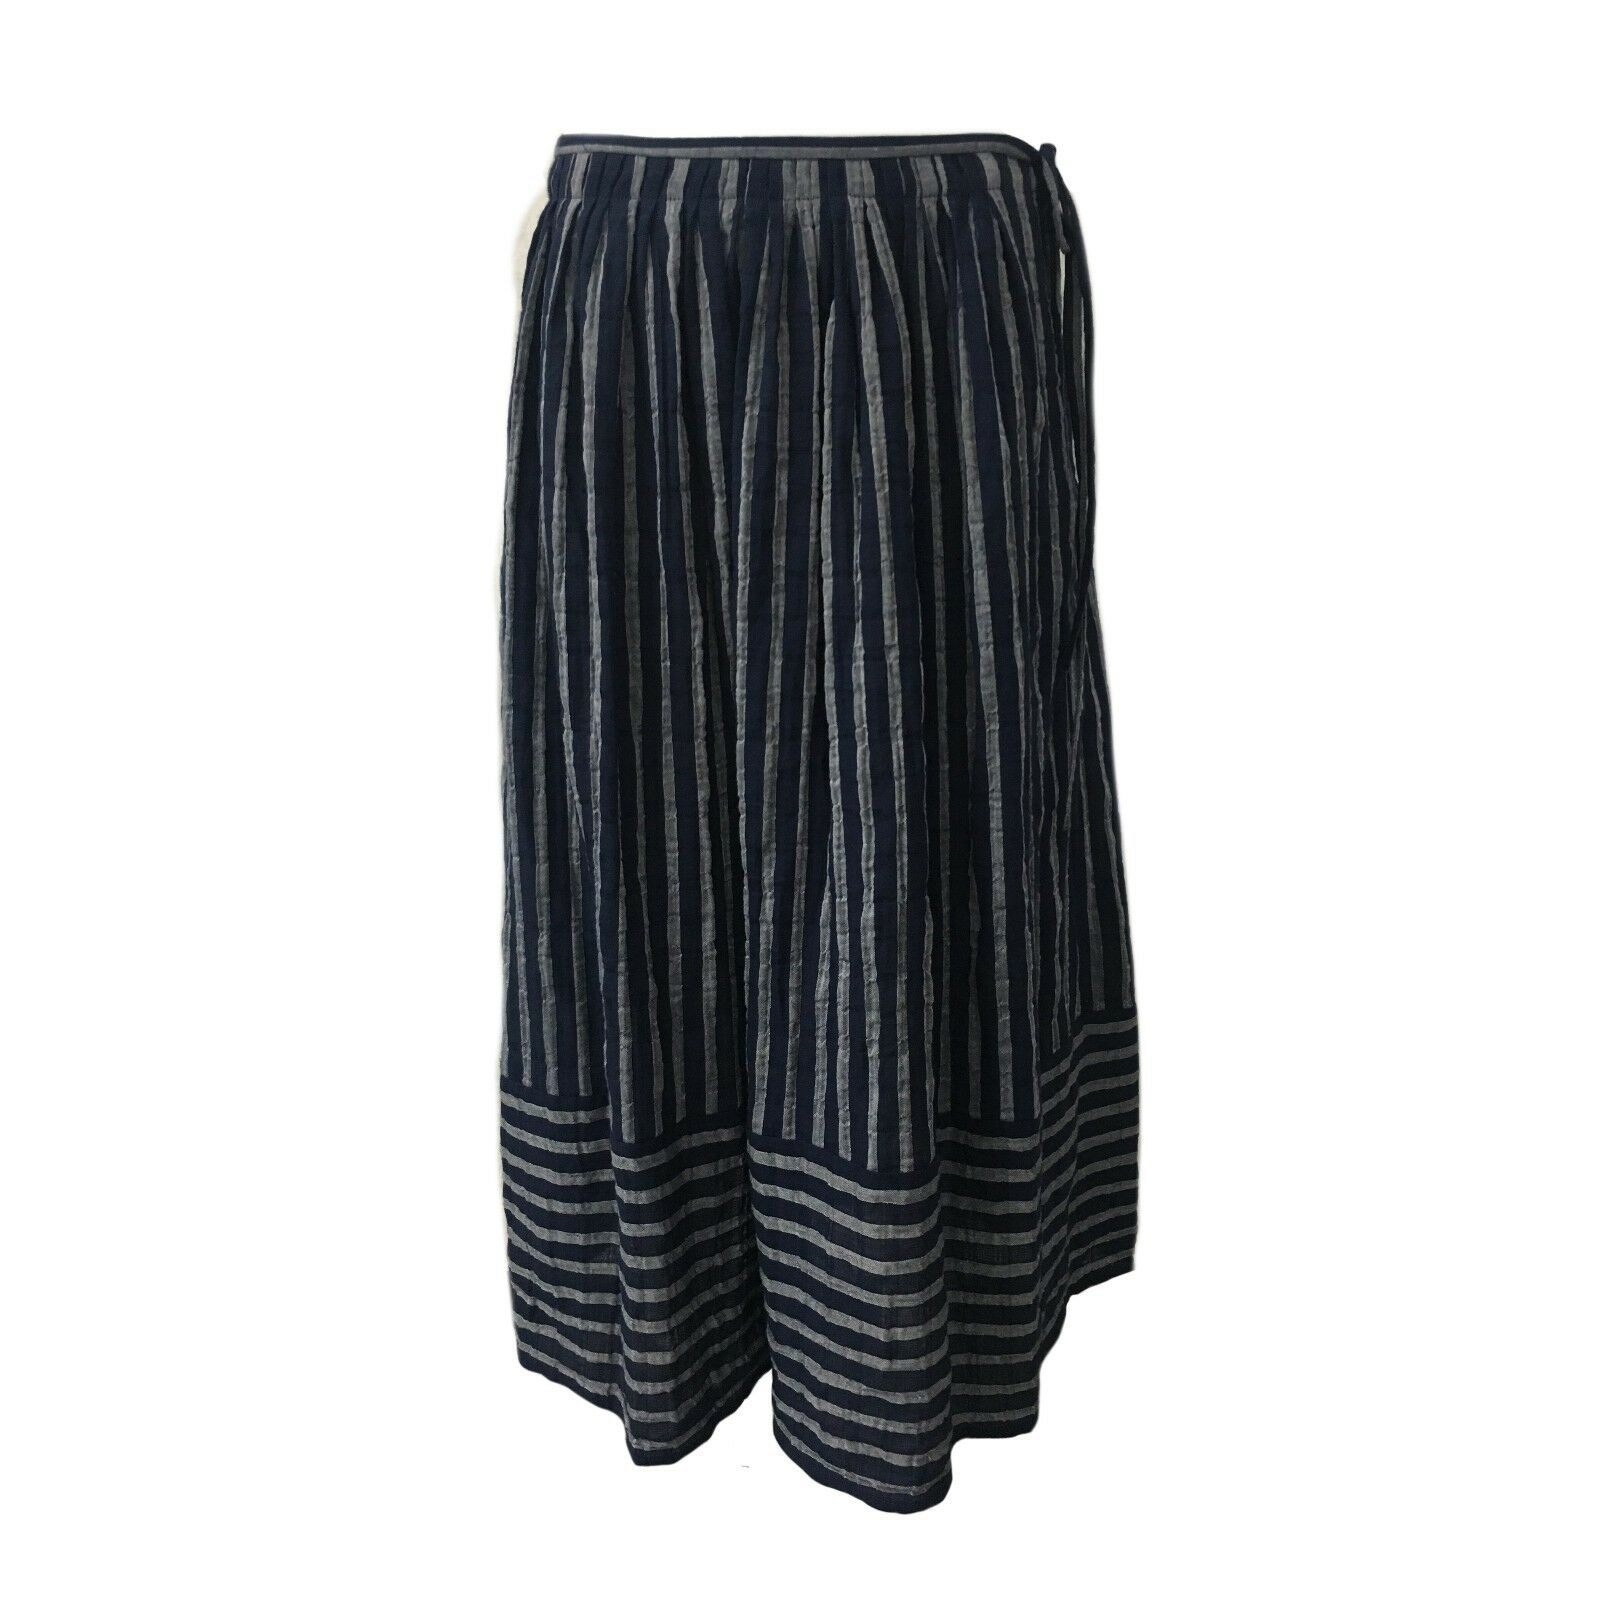 ASPESI skirt woman bluee striped white mod H506 G165 99% cotton 1% polyurethane